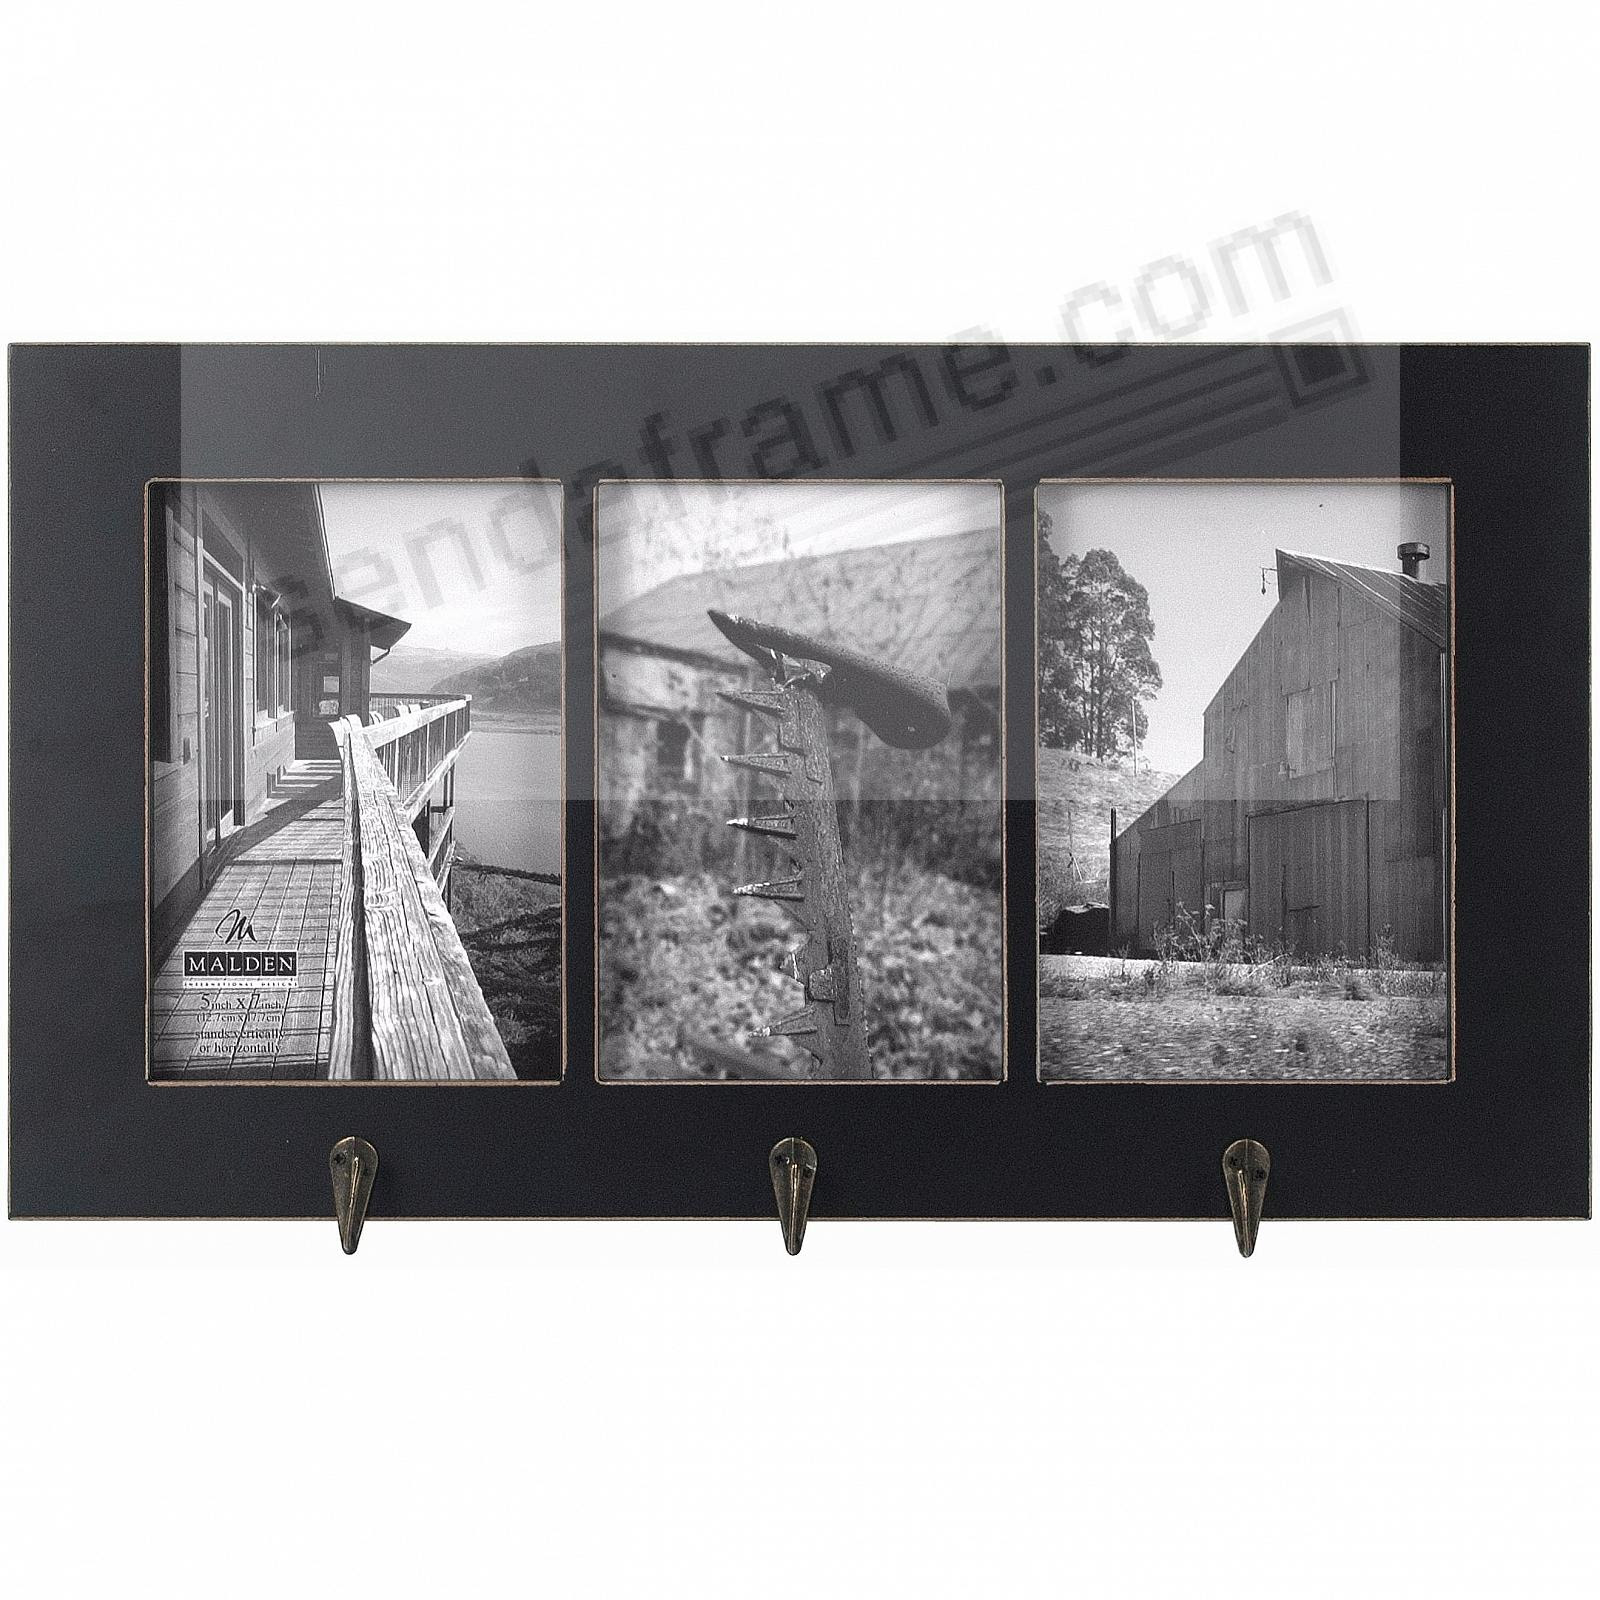 Barnside Black Hanger Triple Displays 3 5x7 Photos By Malden